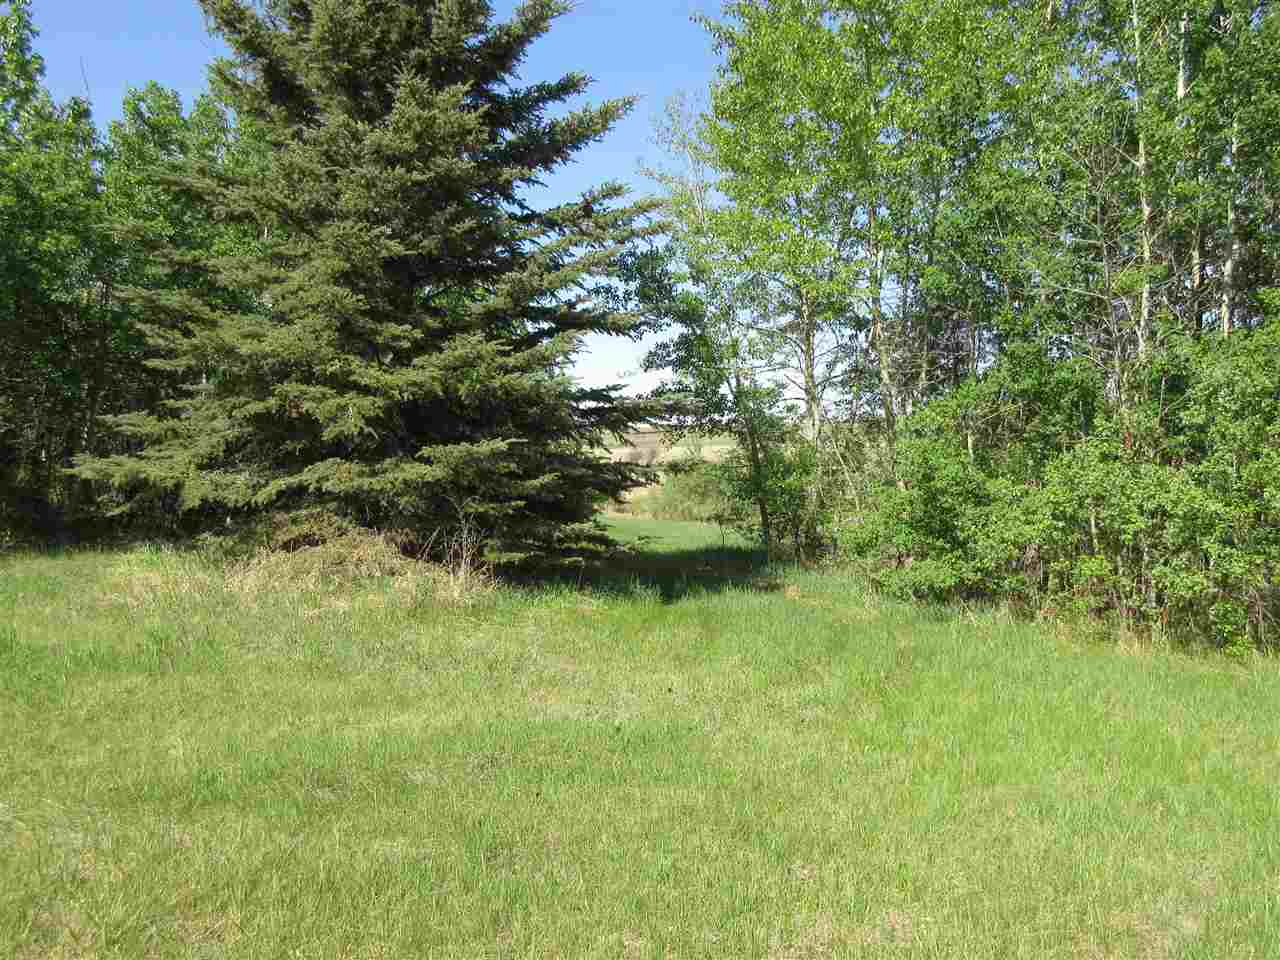 Main Photo: 21,23 57517 Lily Lake Road: Rural Sturgeon County Rural Land/Vacant Lot for sale : MLS®# E4113895